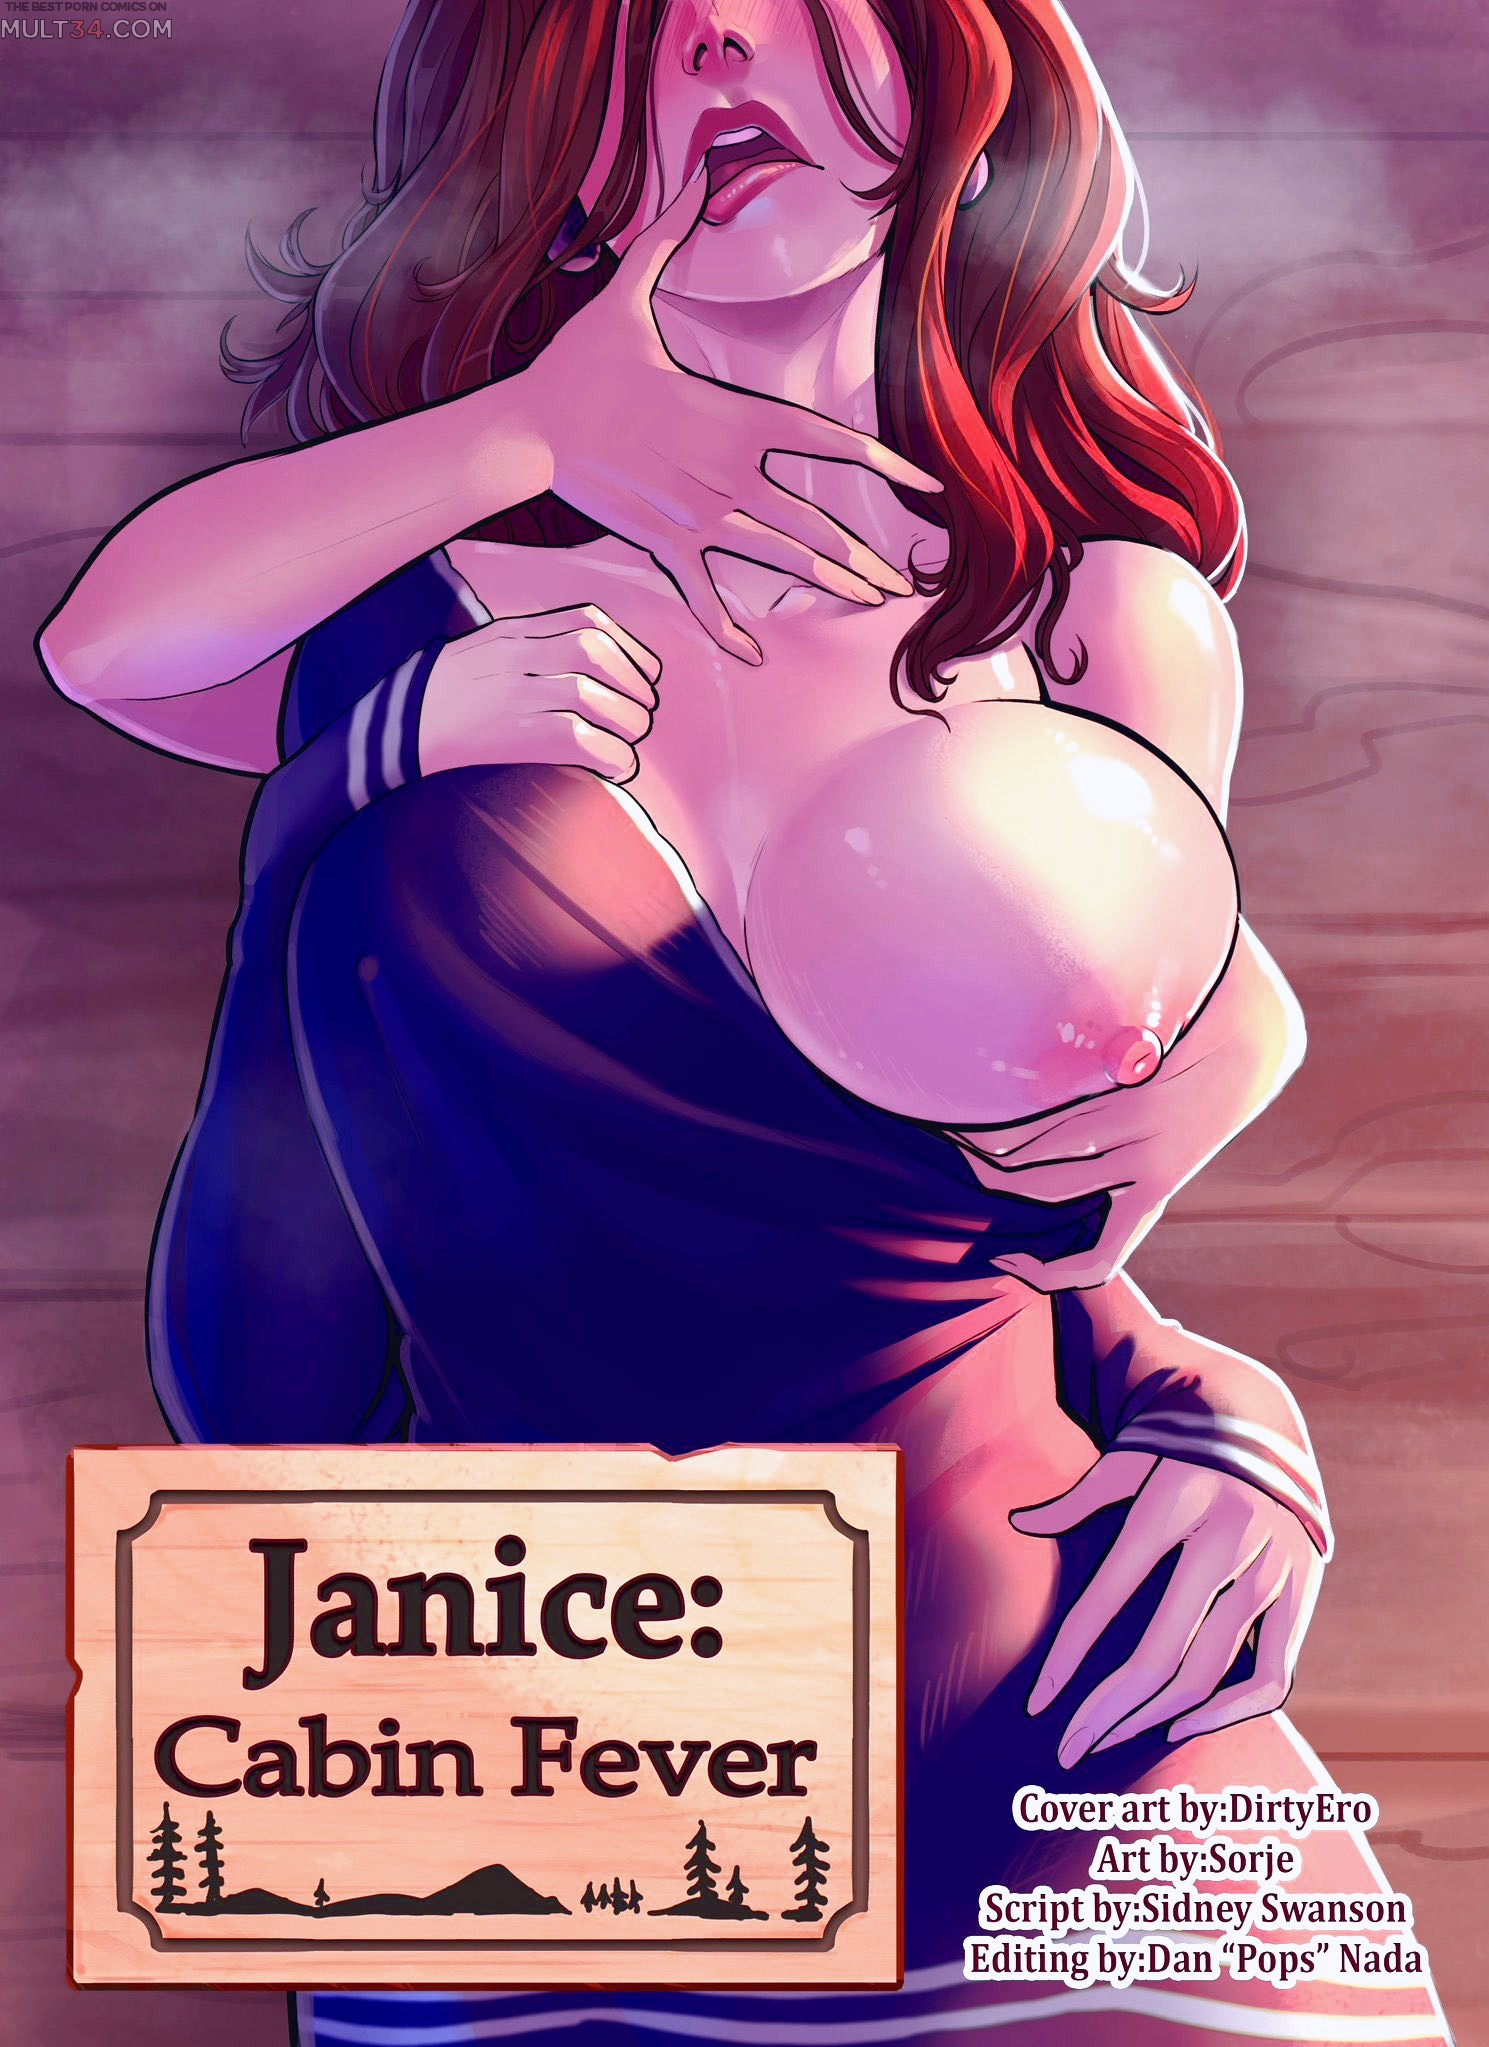 Janice Cabin Fever porn comic page 1